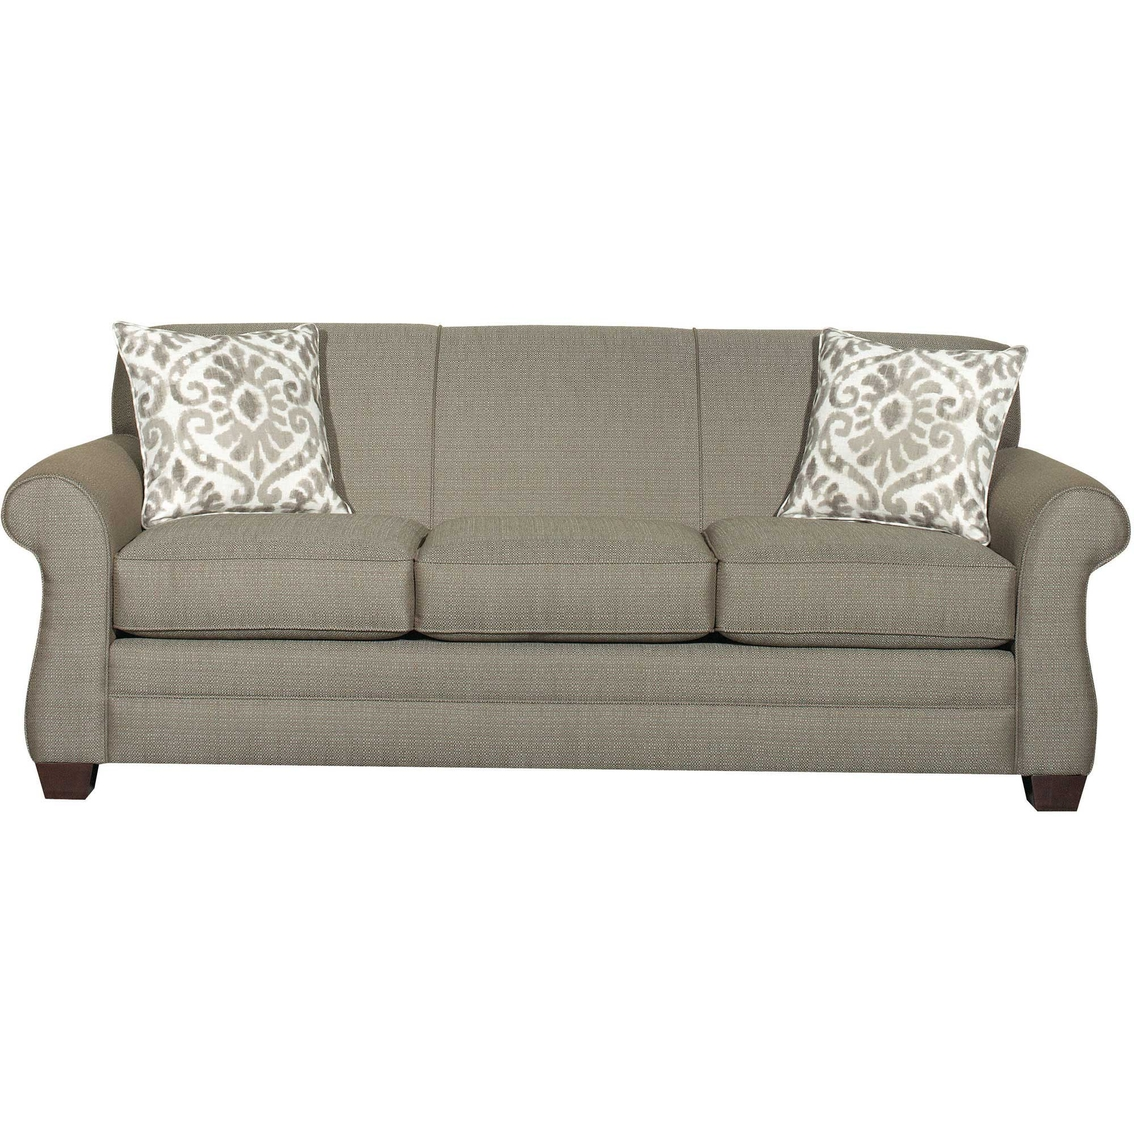 Bassett Maverick Queen Sofa Sleeper Sofas Couches Home Appliances Shop The Exchange